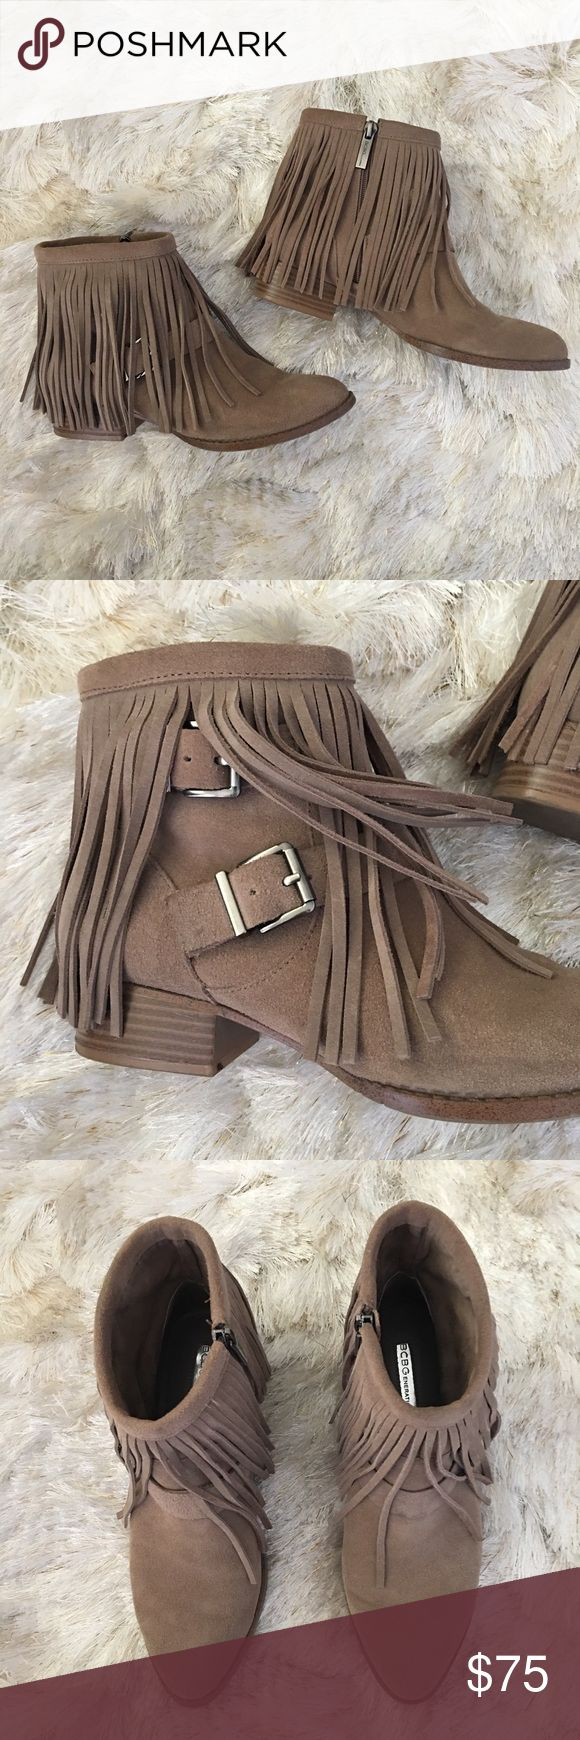 "Taupe Fringe Suede Buckled Boho Ankle Boots 7 Great condition. Taupe fringe ankle boots with inside zip. Size 7. Super comfy and true to size. By BCBGeneration. Heel height 1.25"". Double buckle detail. Leather uppers, man made sole. So cute with spring rompers, dresses, and shorts. ❌ No trade. ❌ No PayPal. ❌ No low offers. ❌ BCBGeneration Shoes Ankle Boots & Booties"